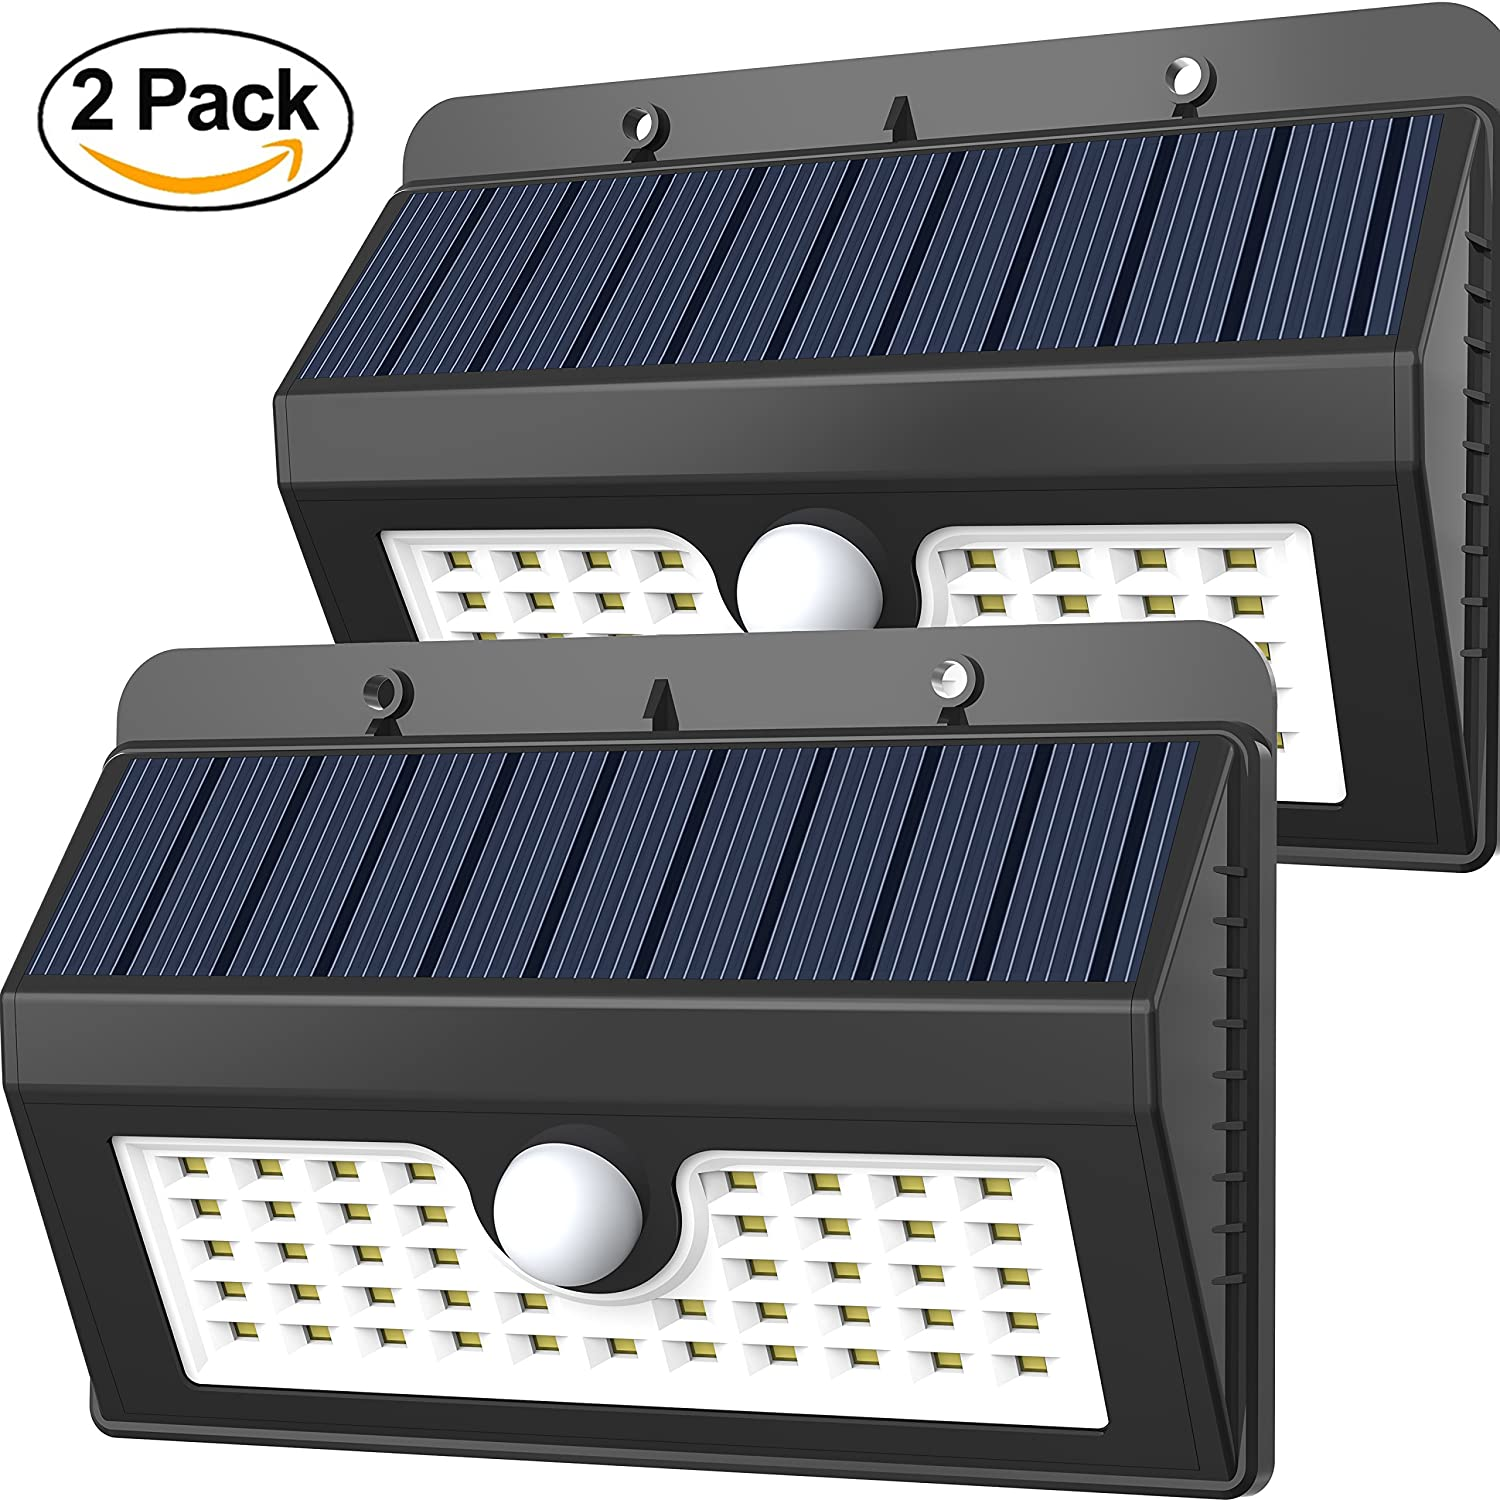 value sensing sams plus gold lighting s solar sunforce box motion gc light w sam home club yr security sale led